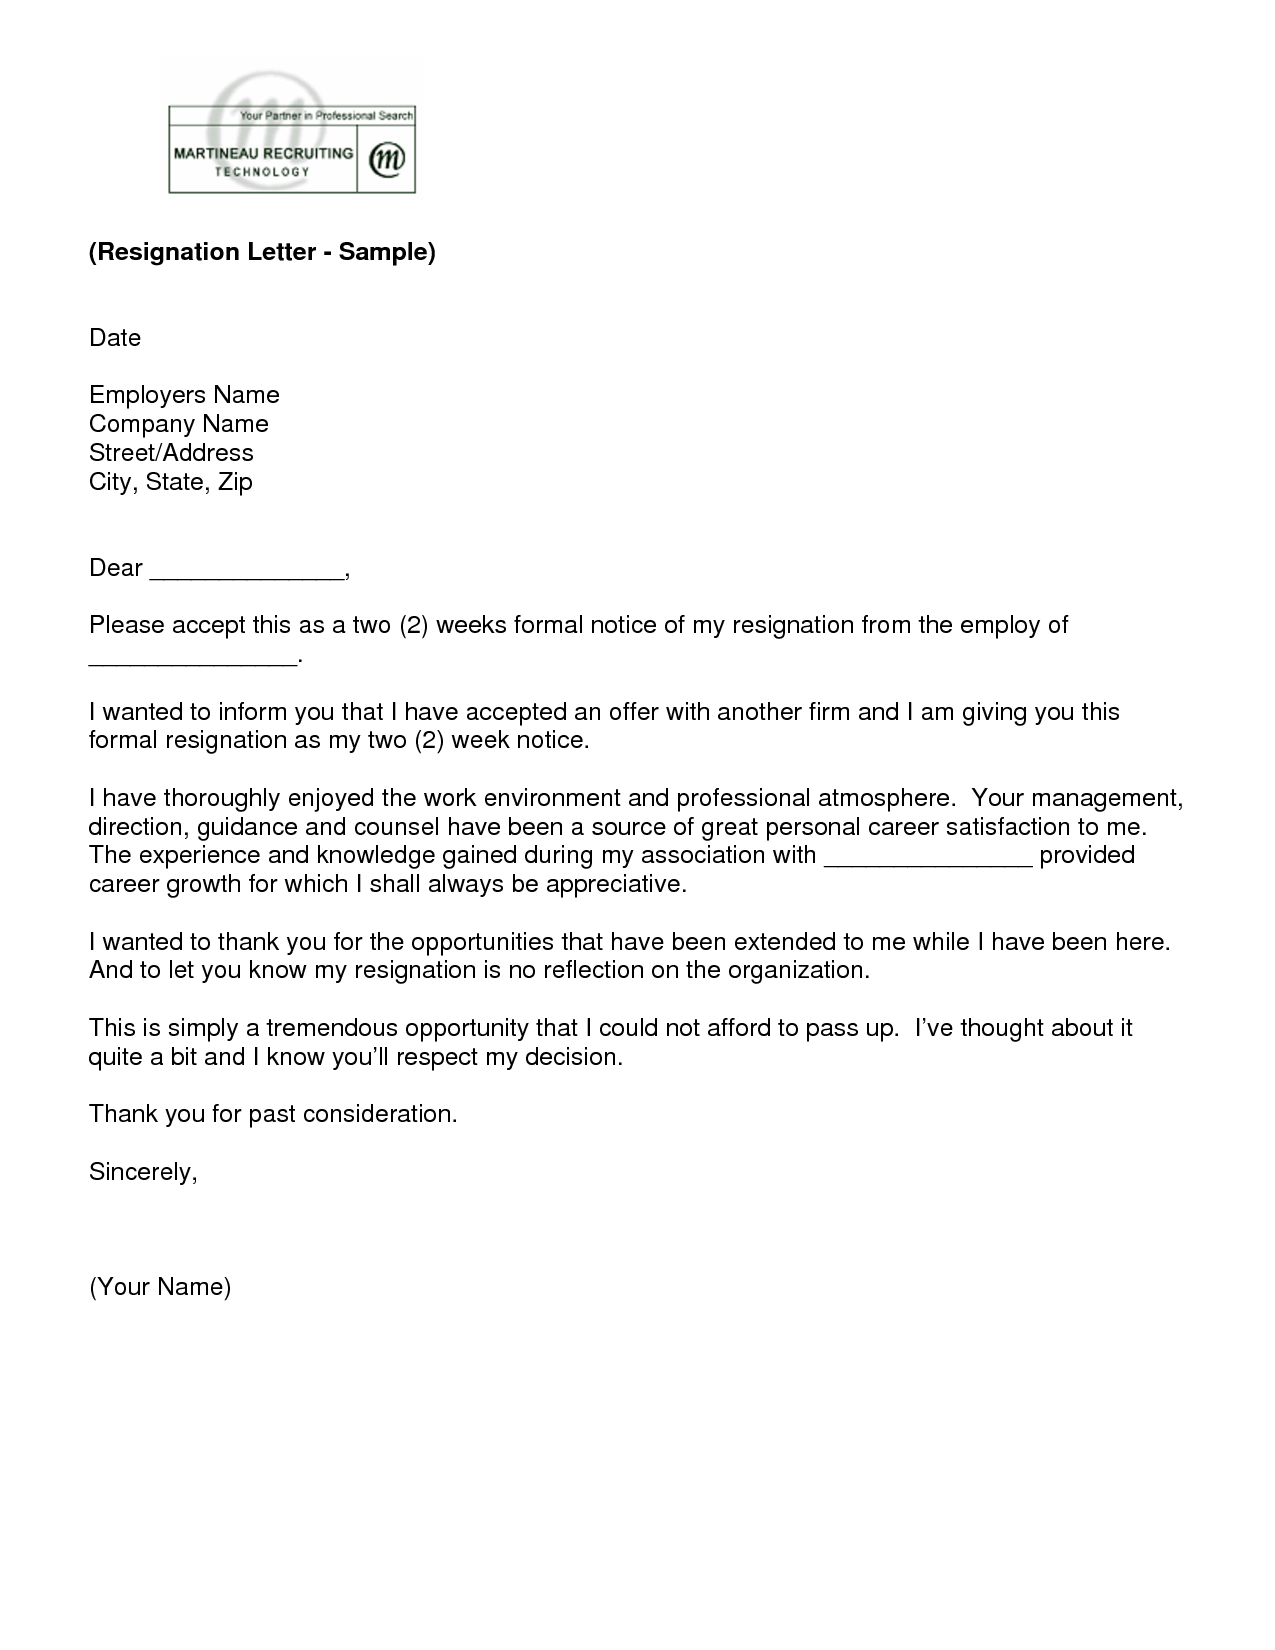 letter of resignation 2 weeks notice template | Ew. Adulthood ...